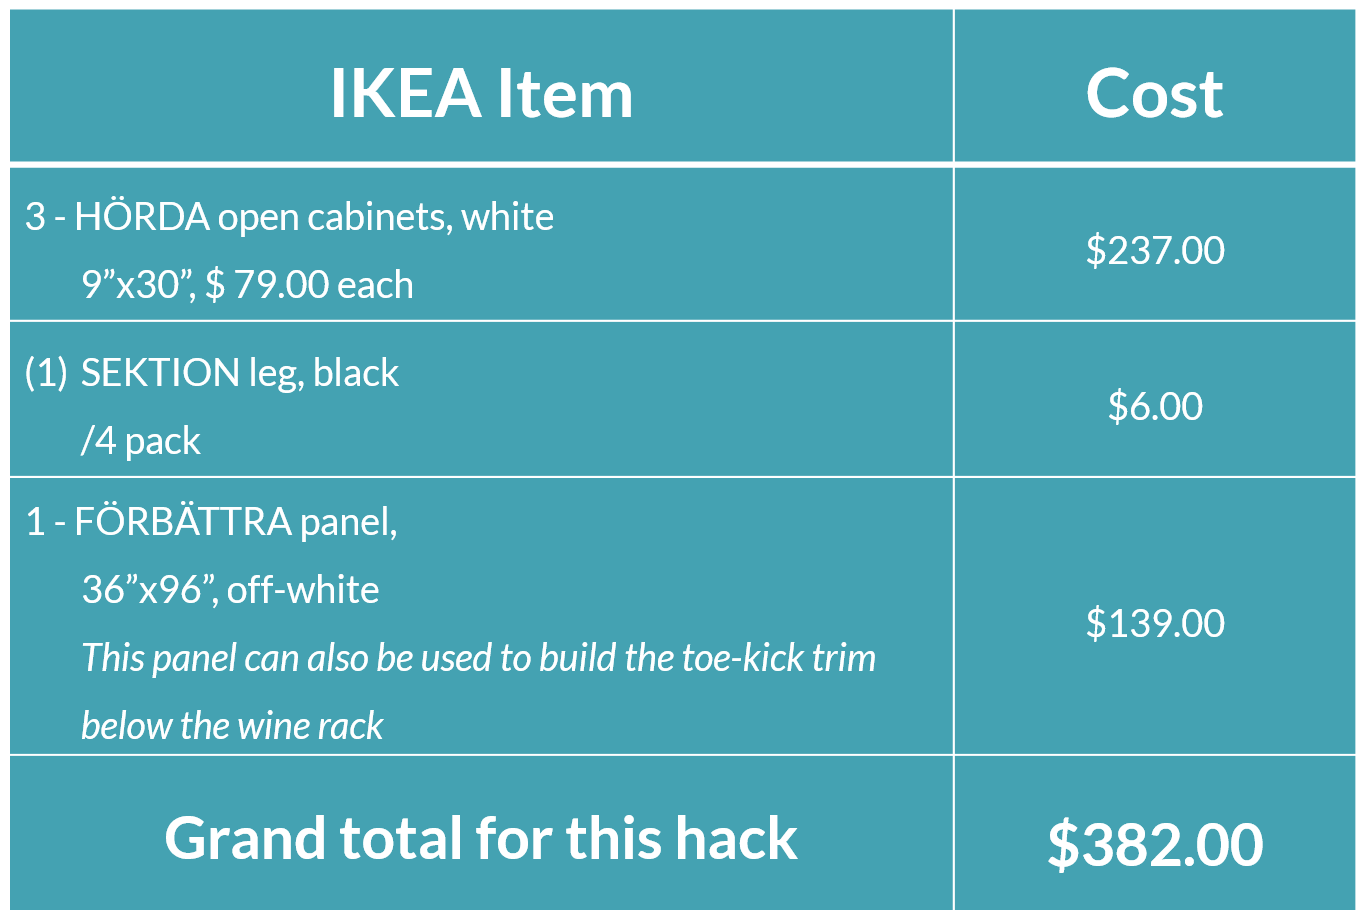 ikea kitchen cabinets prices rickevans homes ikea sektion new kitchen cabinet guide photos prices